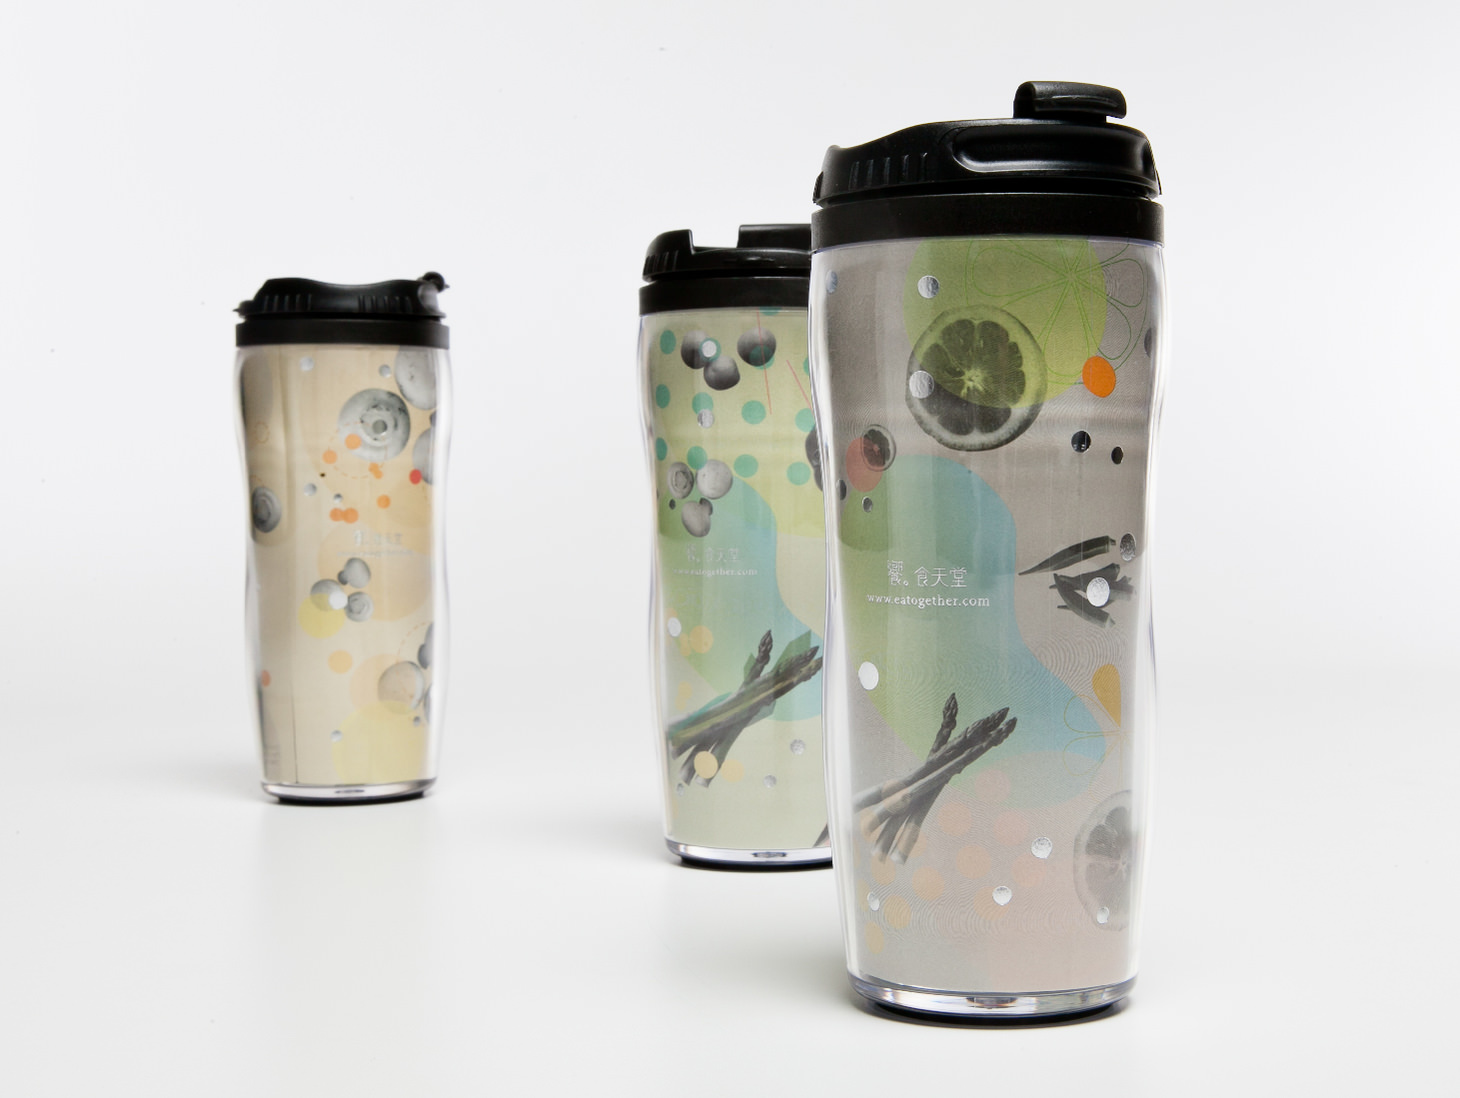 Eatogether_Tumbler_05.jpg